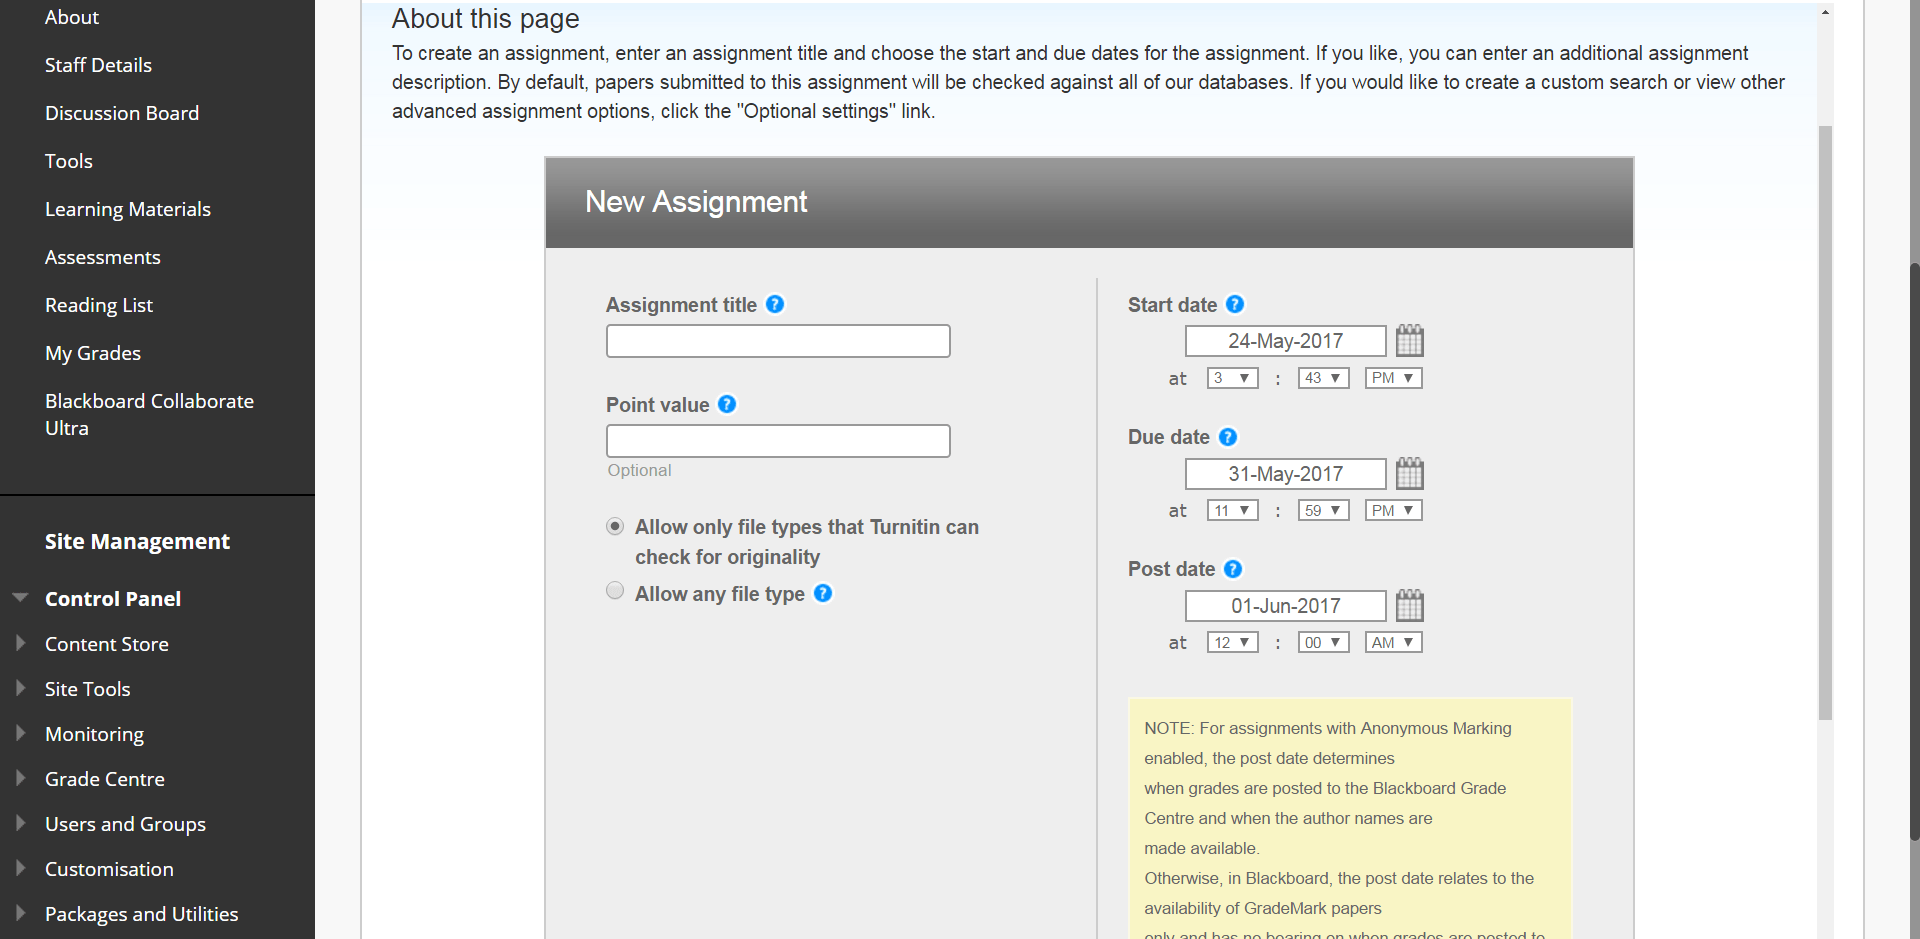 A screenshot of the Turnitin New Assignment setup page. The fields to complete are title, points value, start, due and post date.